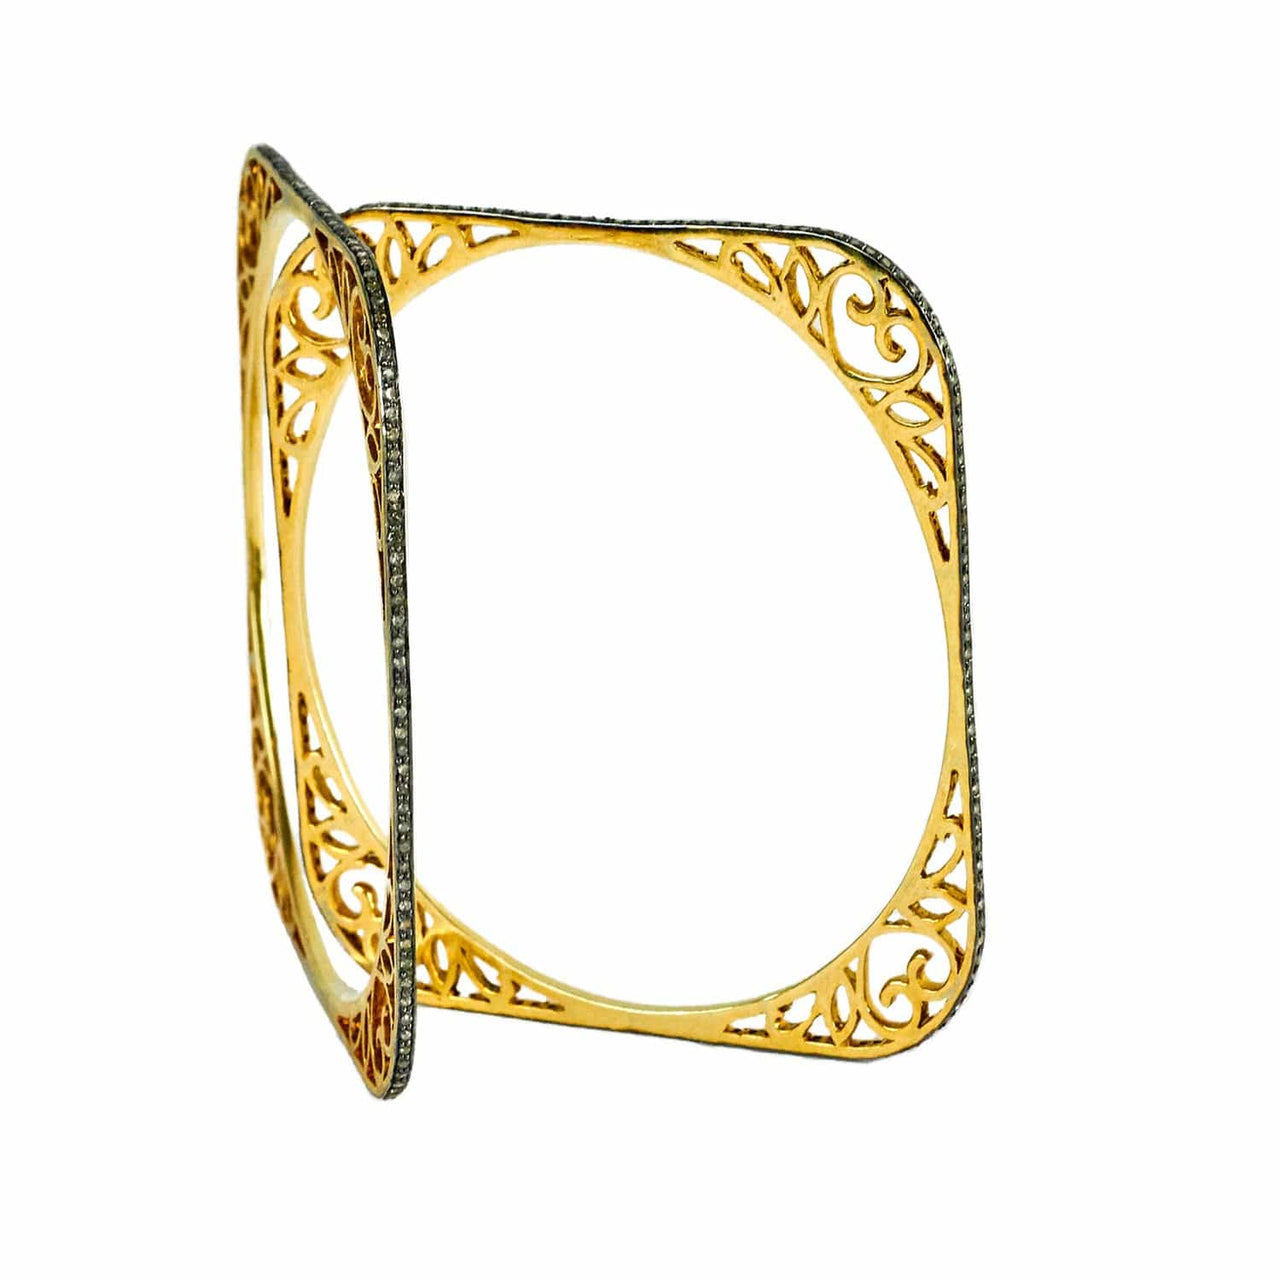 Jaipur Atelier Pair of Square Diamond Bangles